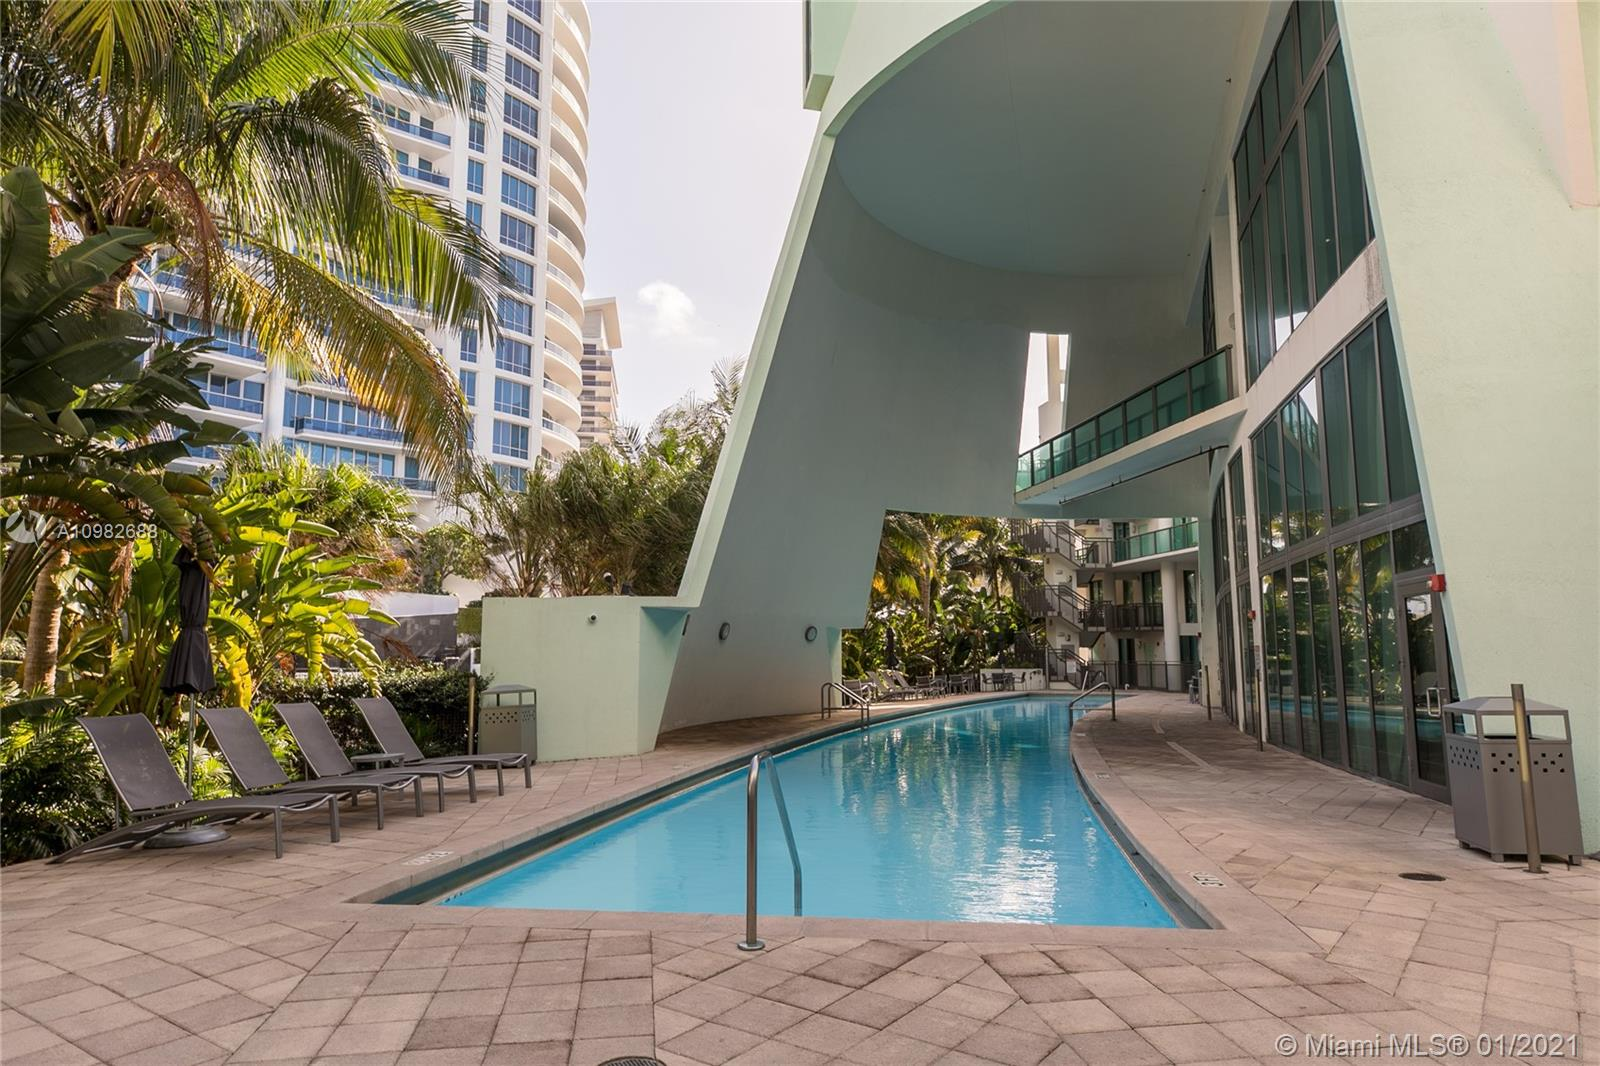 6000 Collins Ave # 124, Miami Beach, Florida 33140, 2 Bedrooms Bedrooms, ,2 BathroomsBathrooms,Residential,For Sale,6000 Collins Ave # 124,A10982688